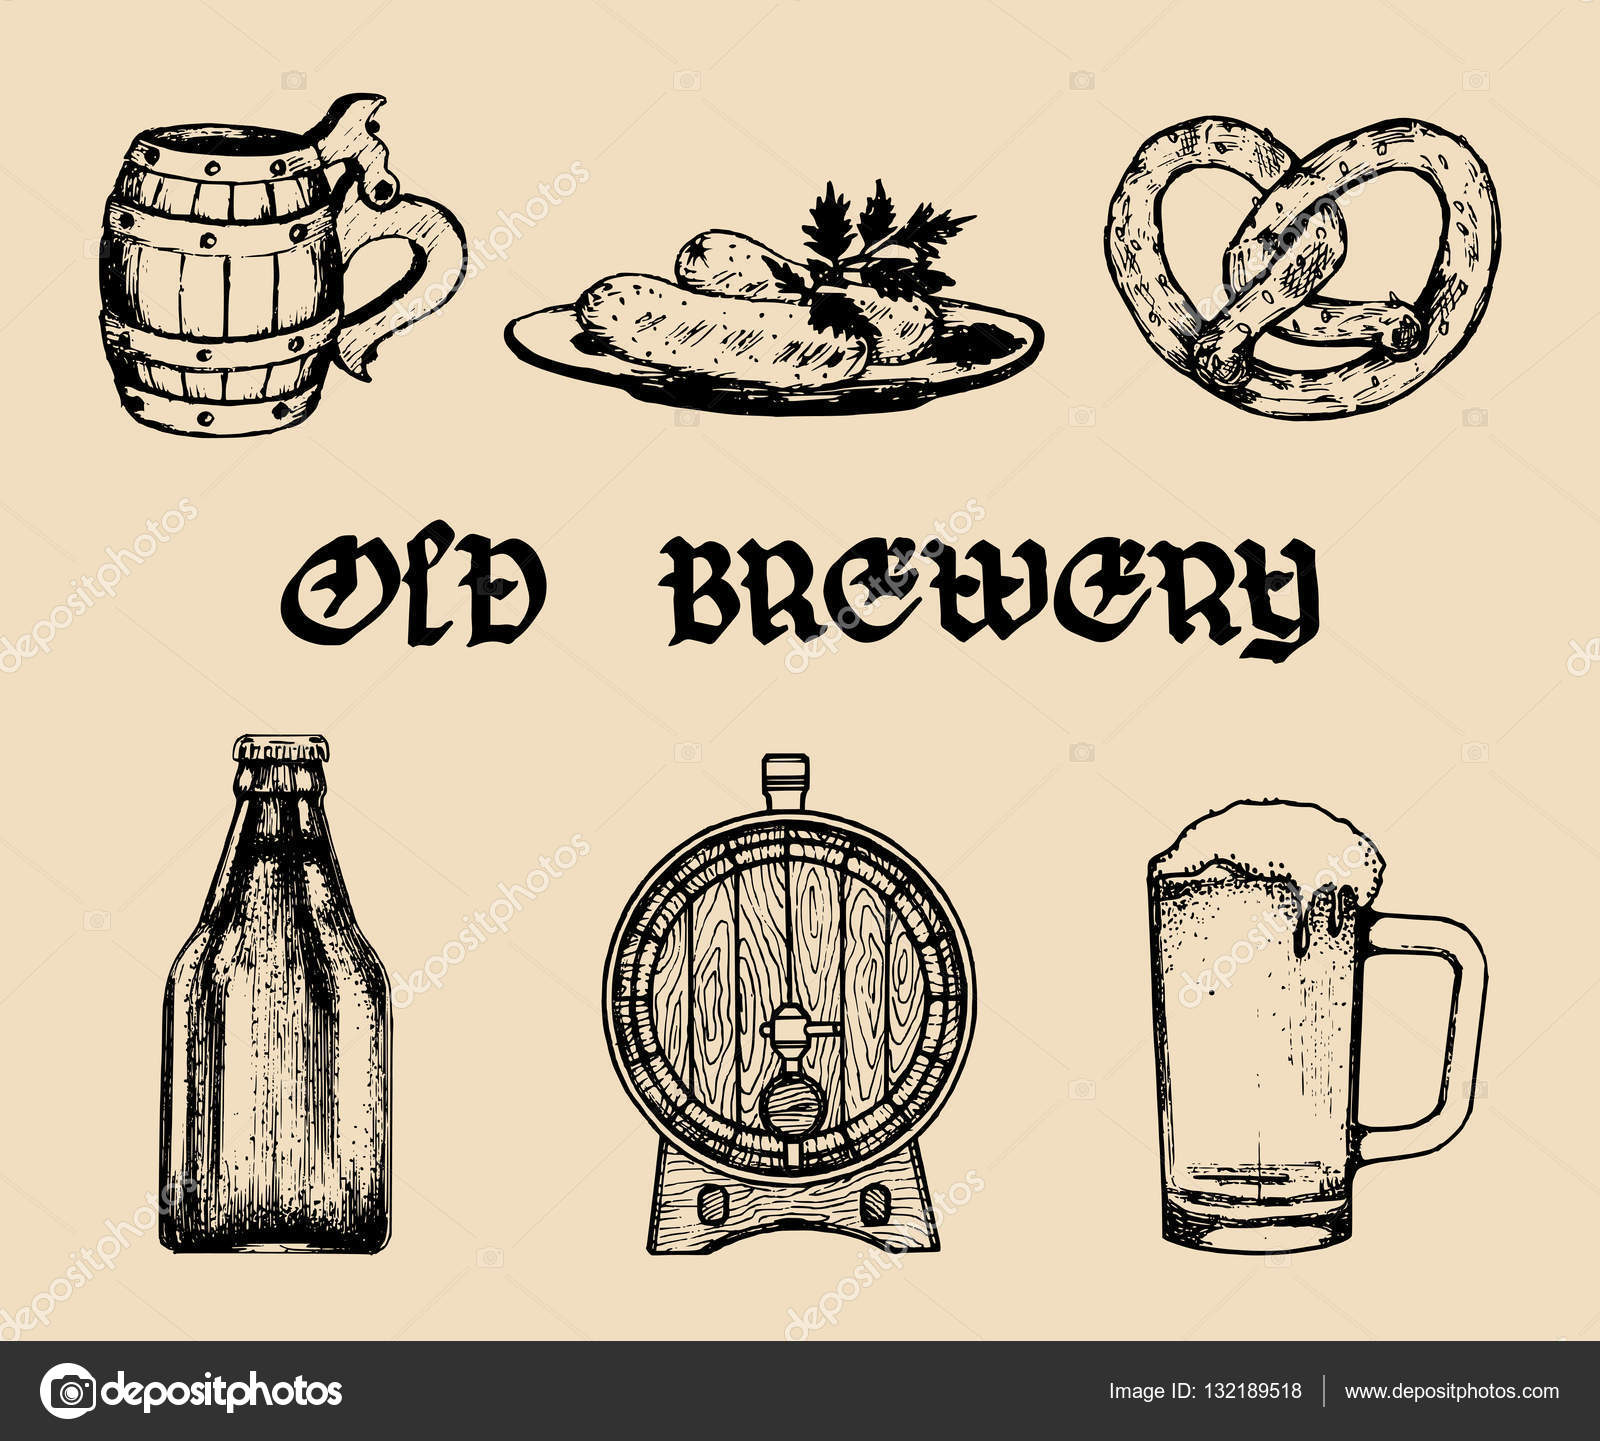 Old brewery banner — Stock Vector © vladayoung #132189518.